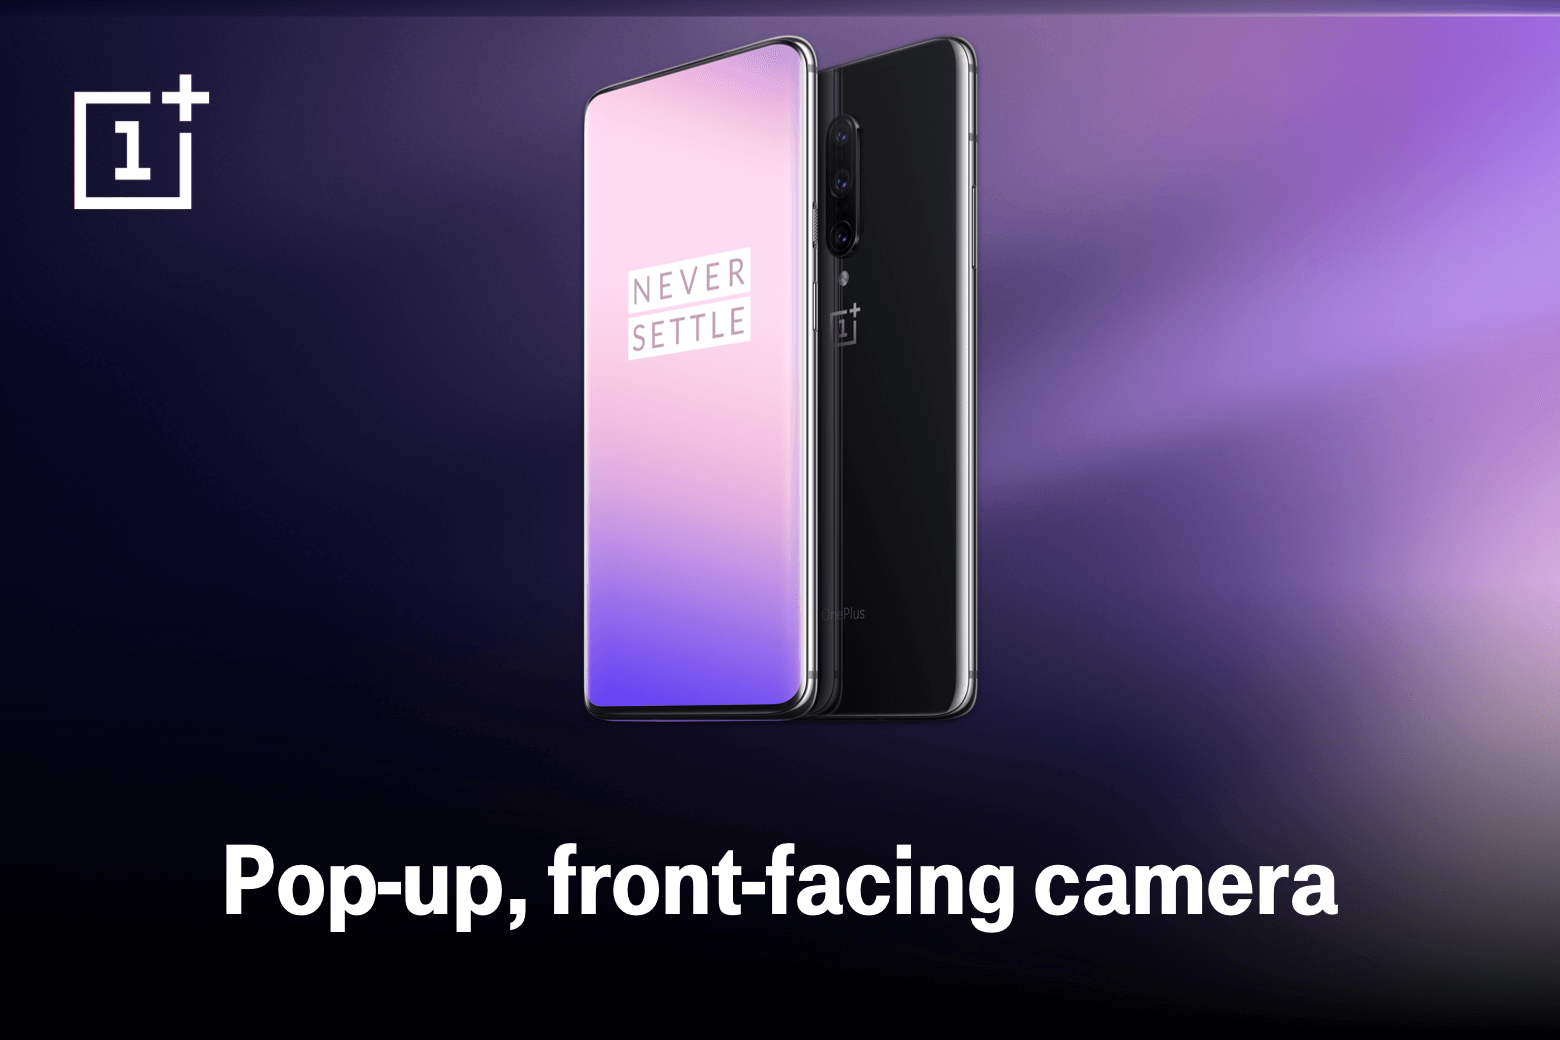 Never Settle. Pop-up, front-facing camera.